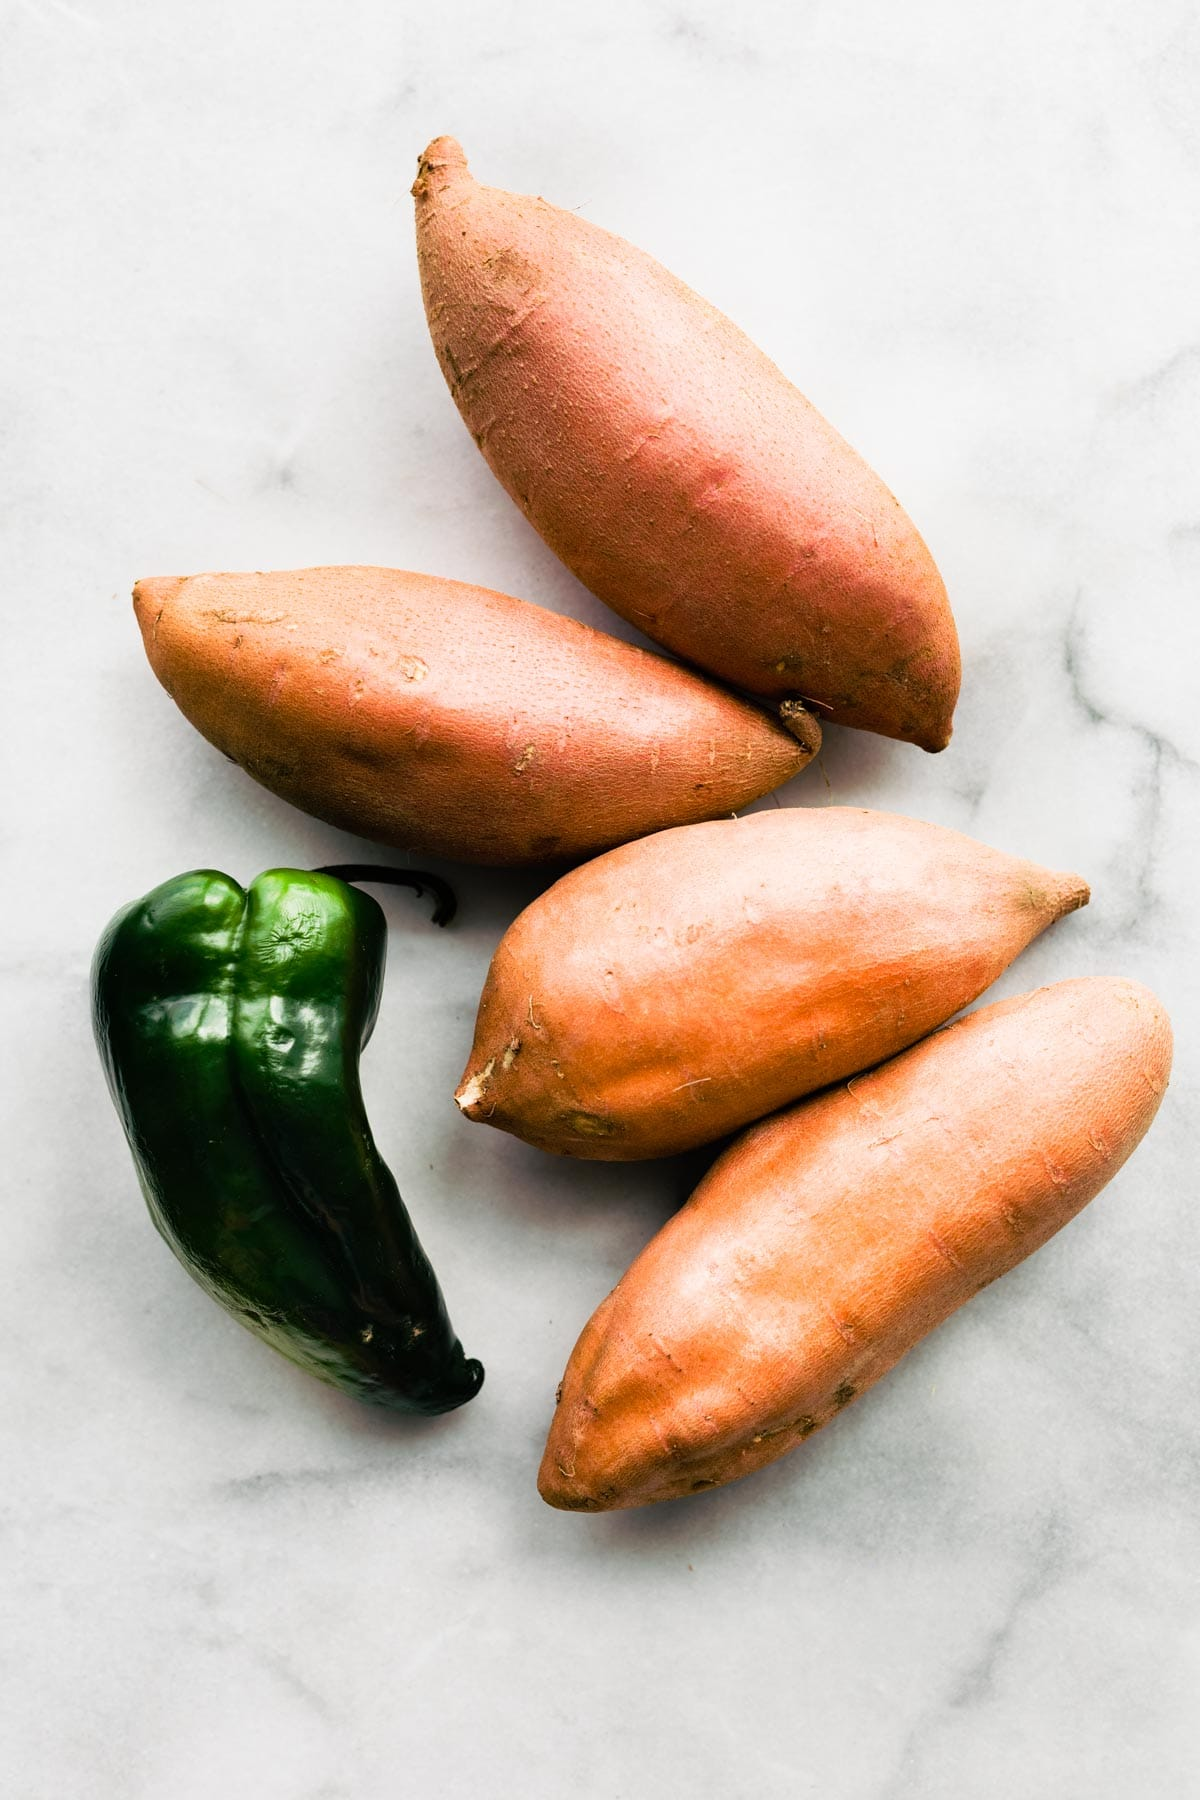 overhead photo: 4 whole sweet potatoes and 1 poblano pepper on white marble background